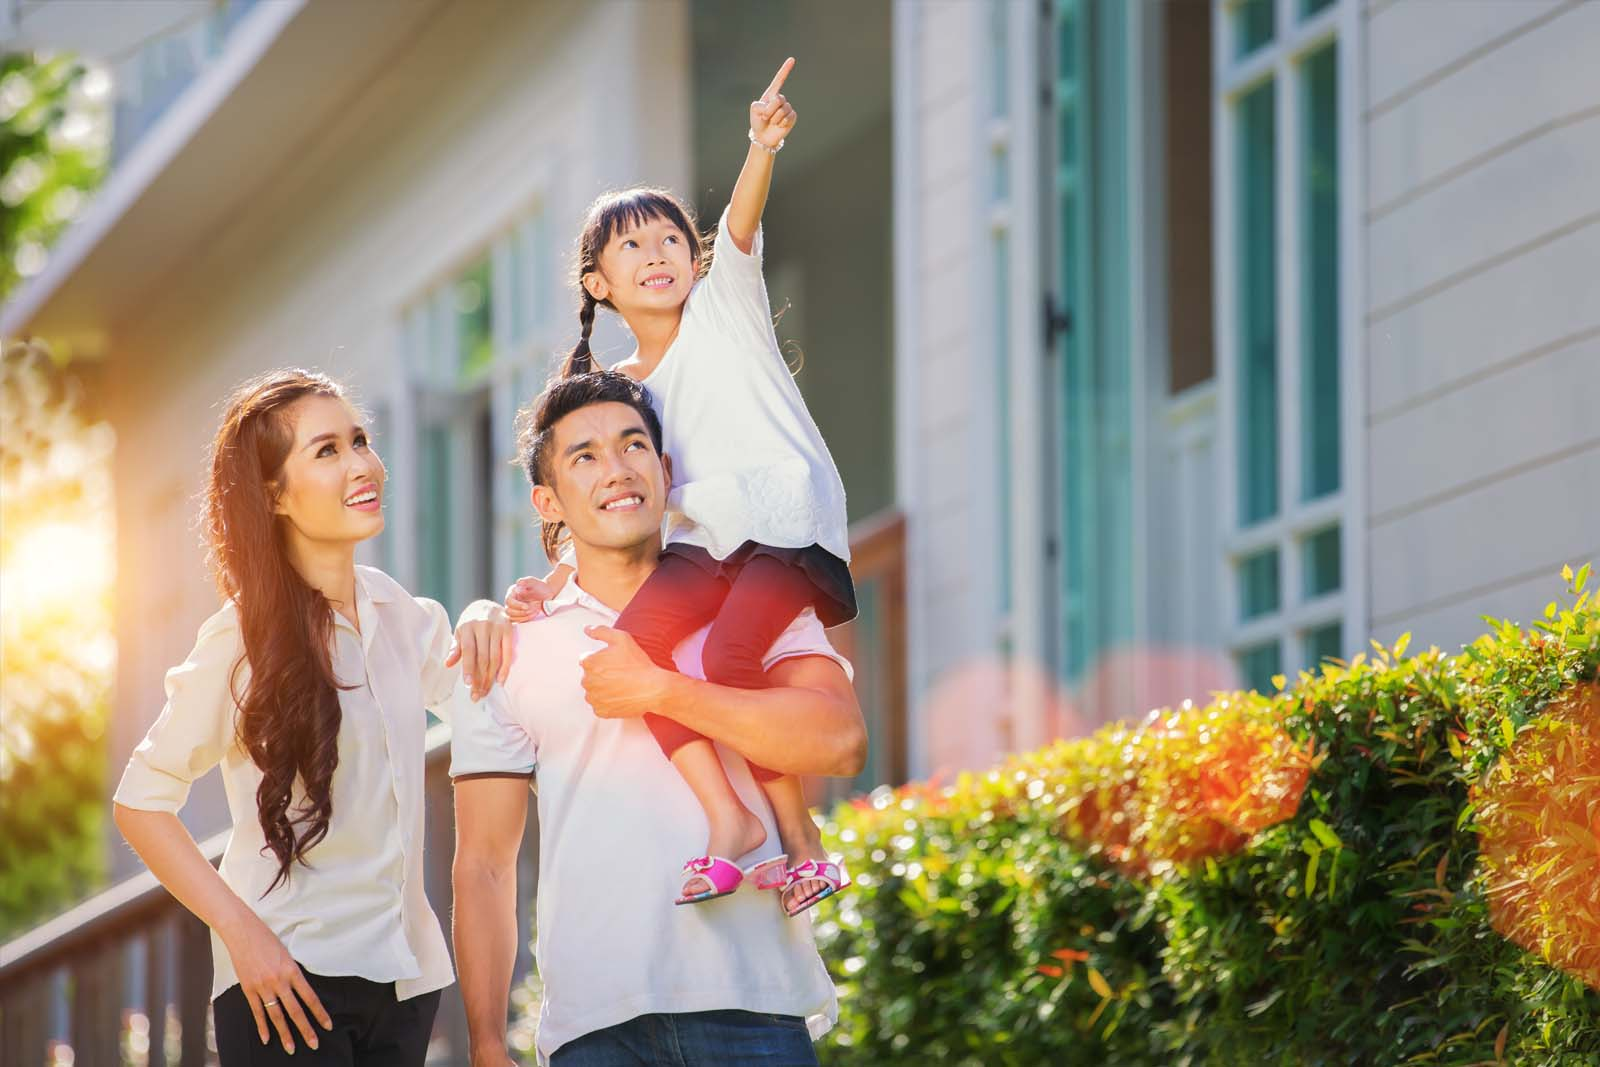 homeowners insurance in Quincy, Massachusetts